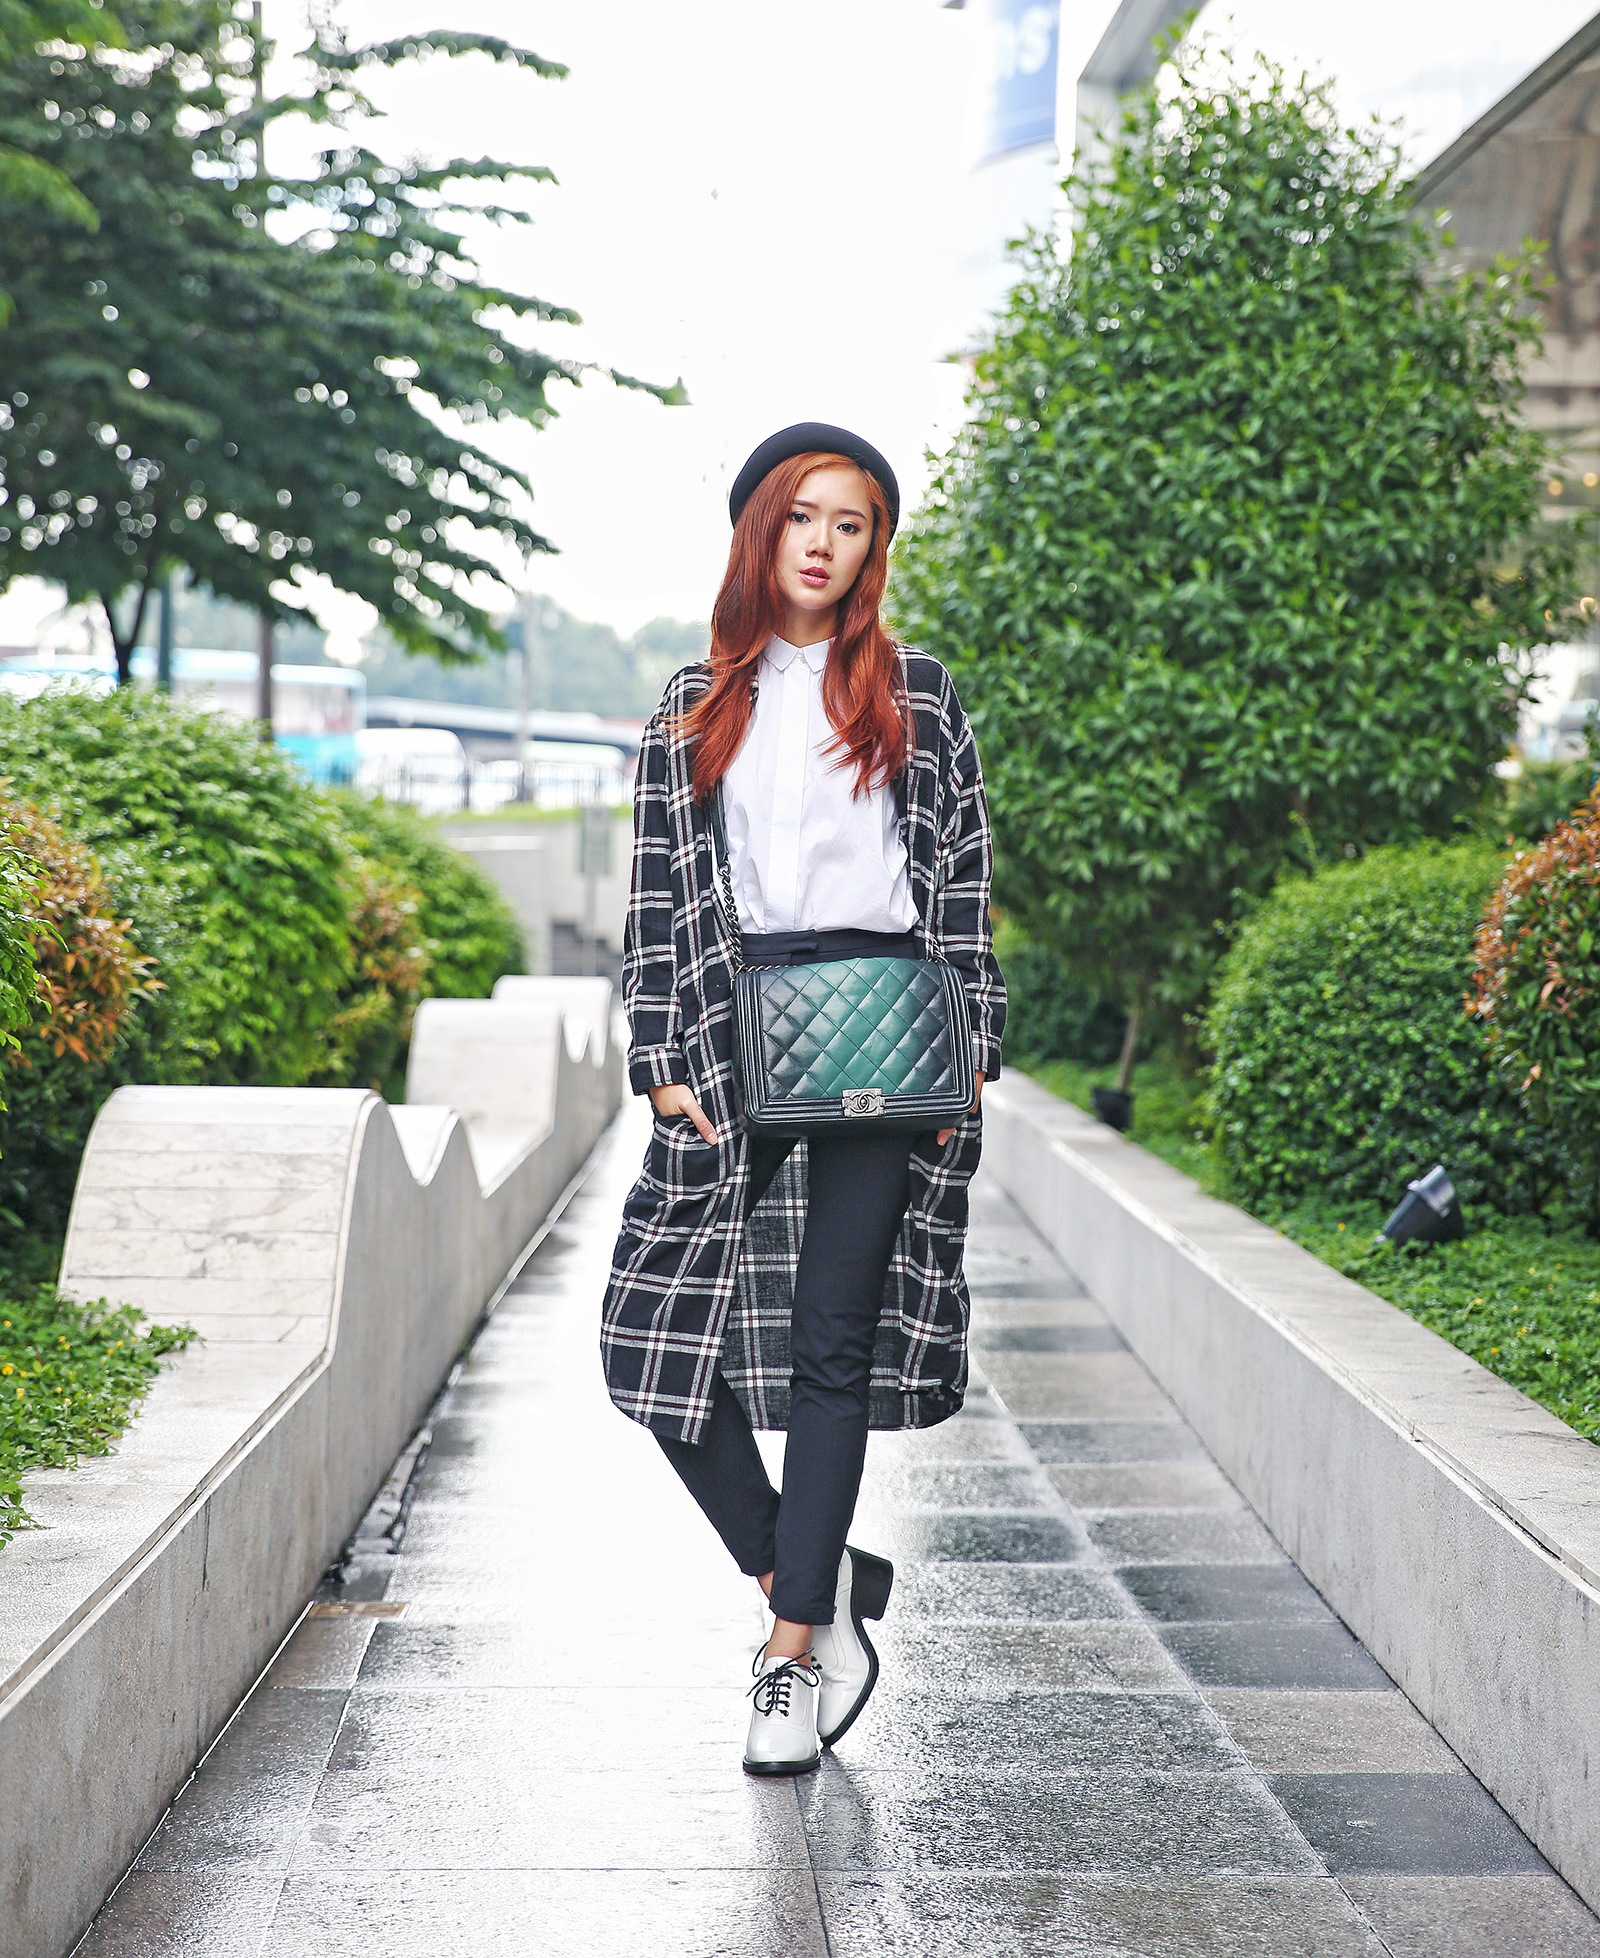 Uniqlo Flannel, Acne Studios, Chanel boy bag | www.itscamilleco.com